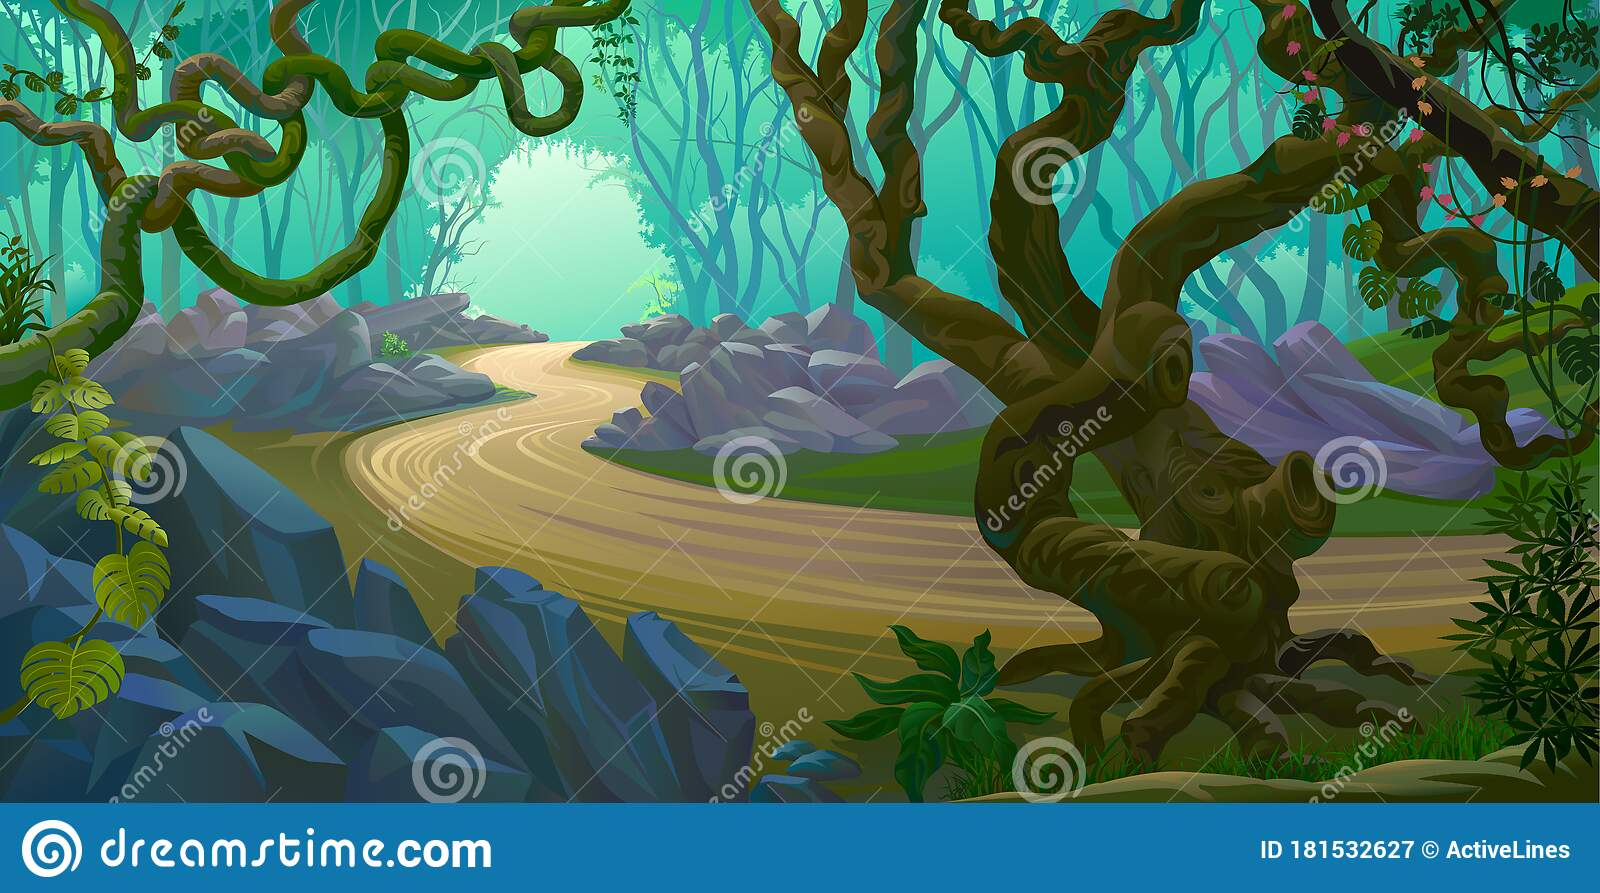 Creepy Branches Tangled Across The Forest A Road Through The Jungle Stock Vector Illustration Of Bush Environment 181532627